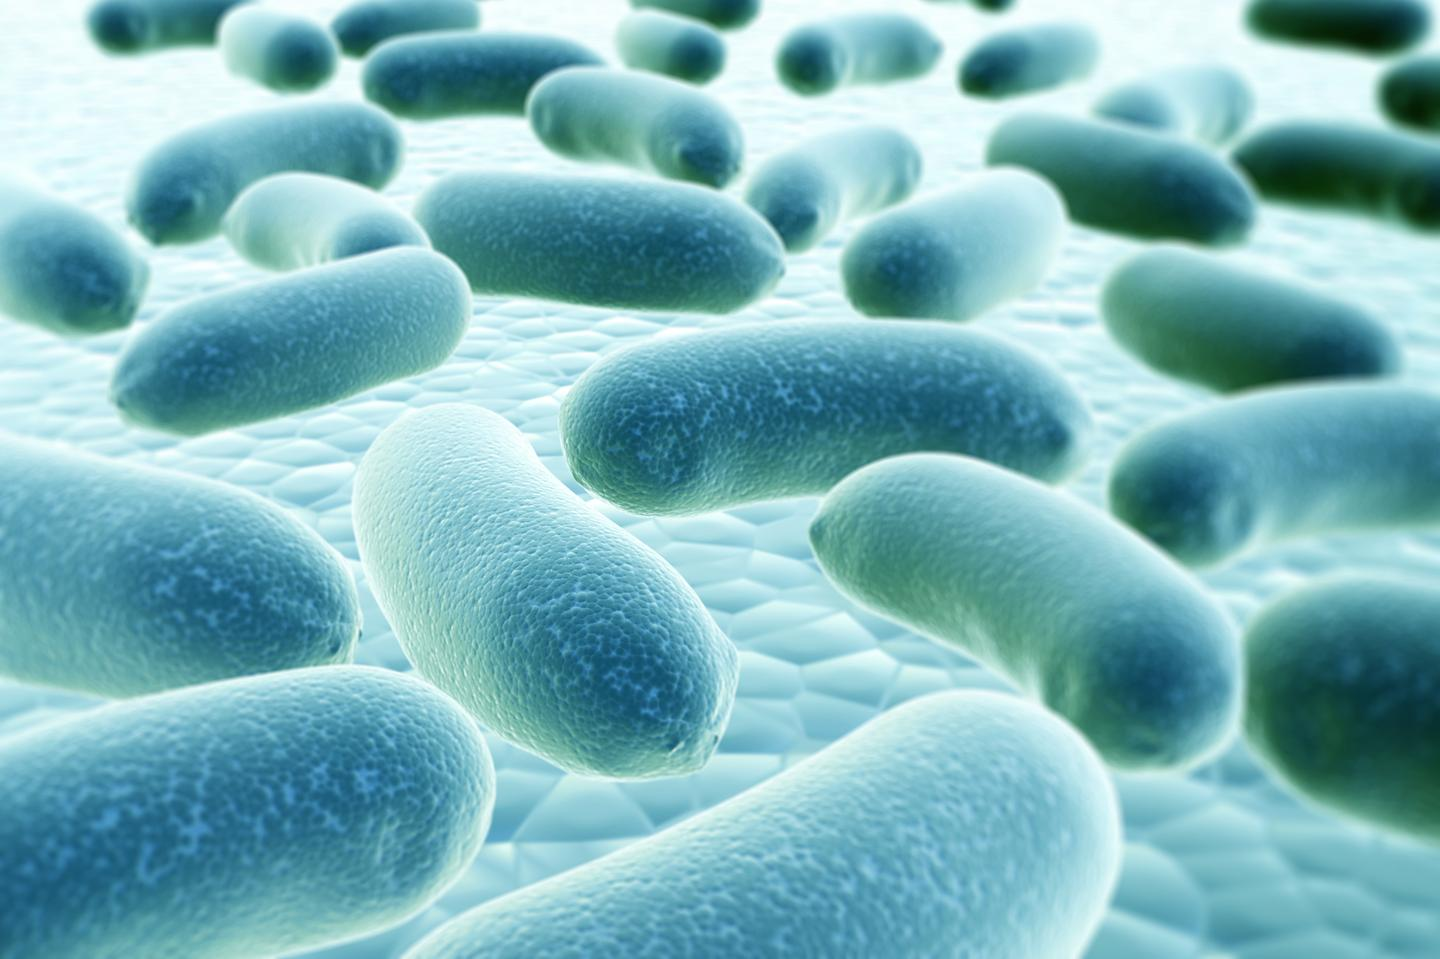 Researchers have found a way to supercharge the immune system's response to bacteria